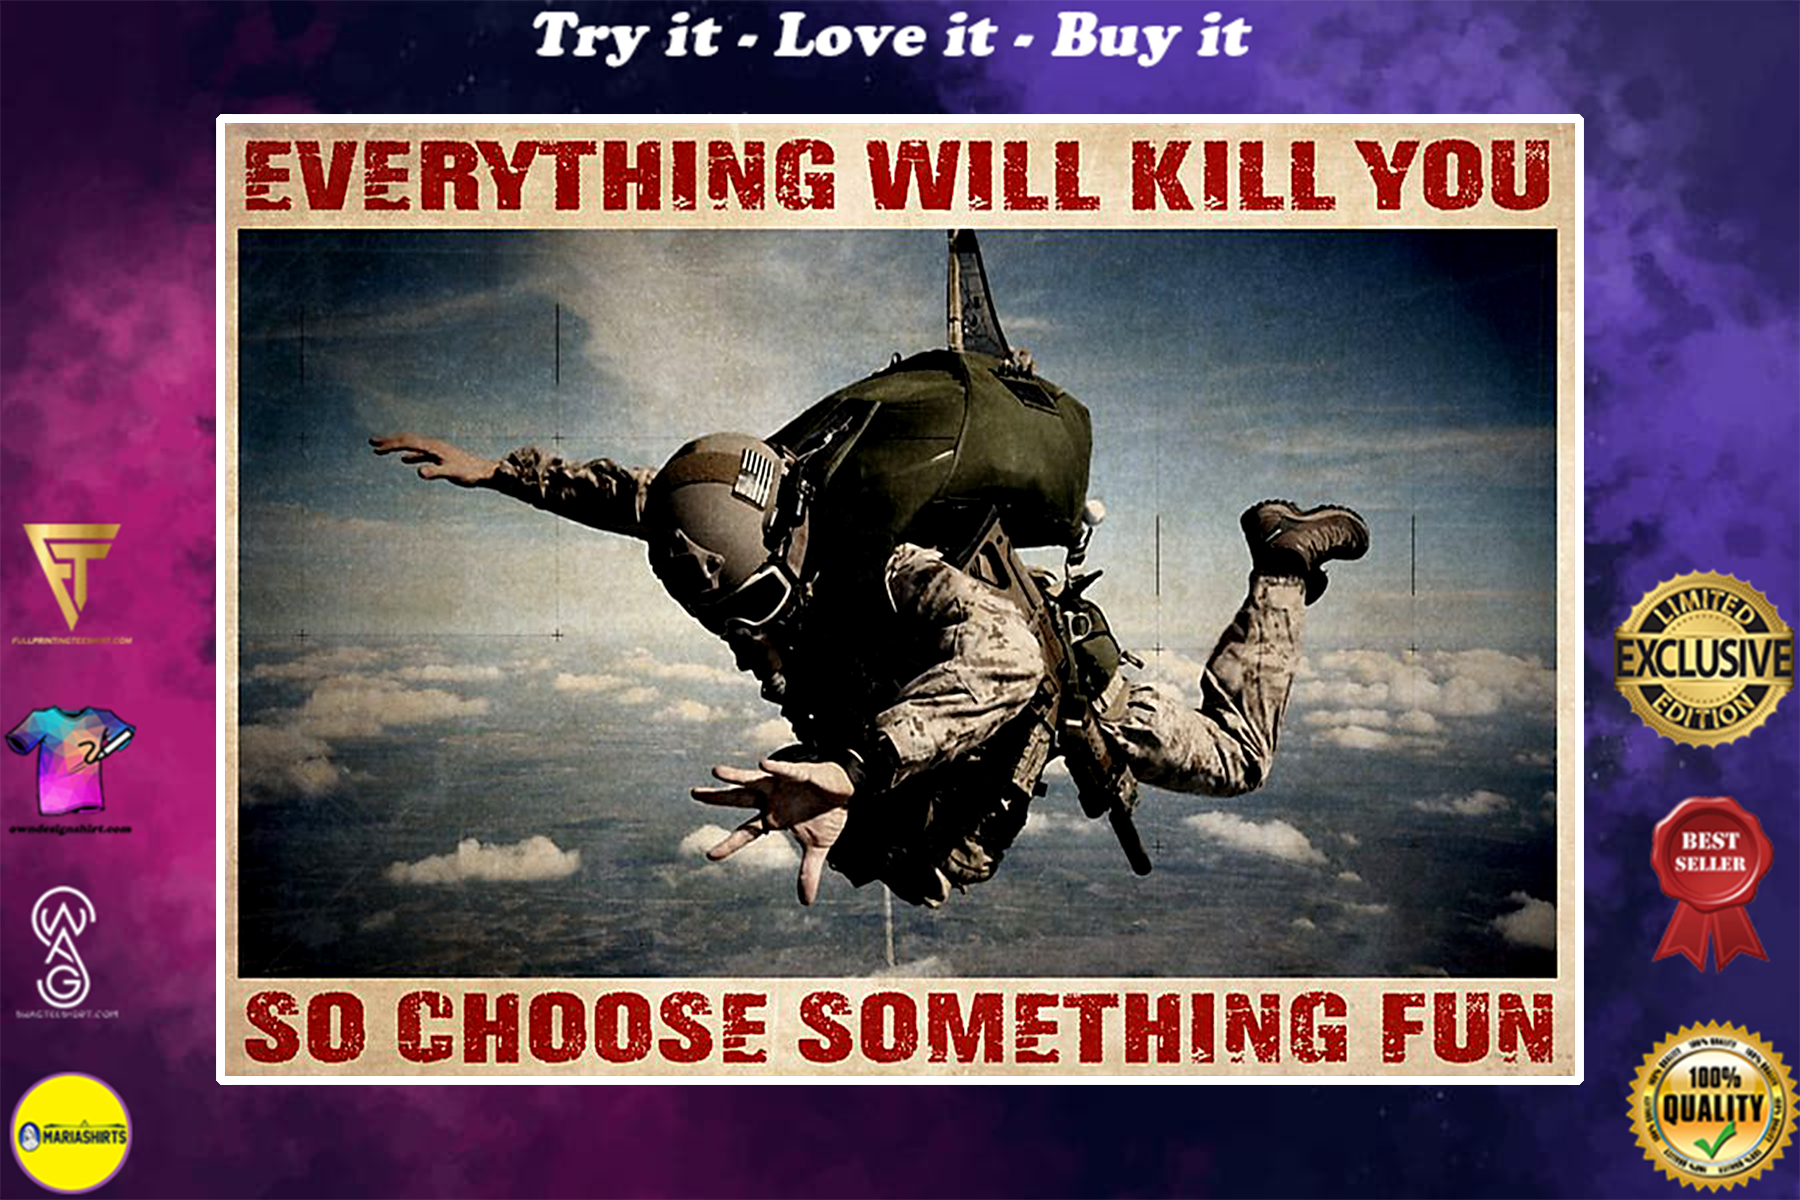 vintage airborne soldier everything will kill you so choose something fun poster